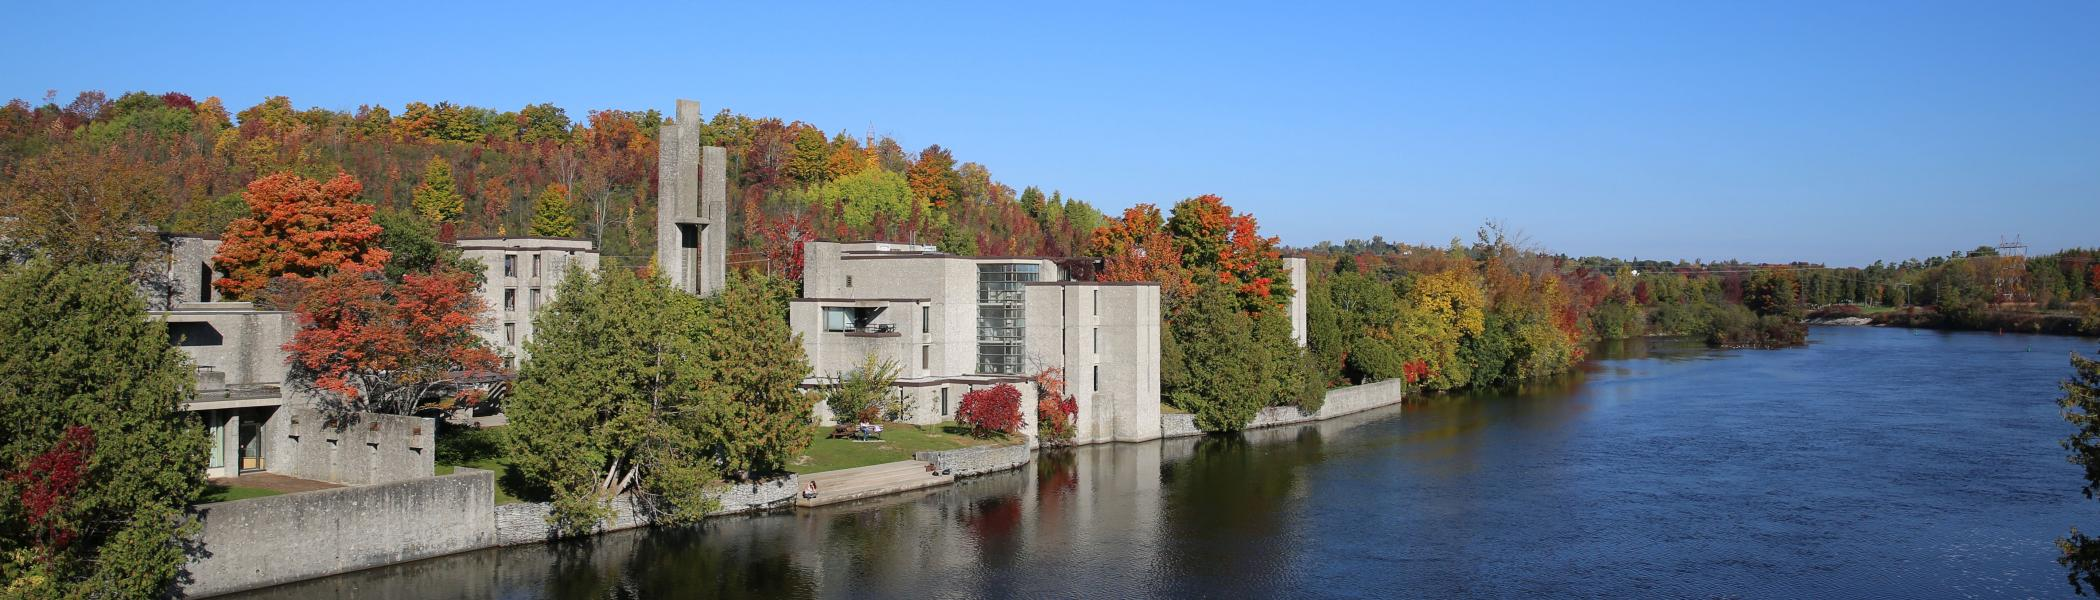 View of Champlain College and the Otonabee river